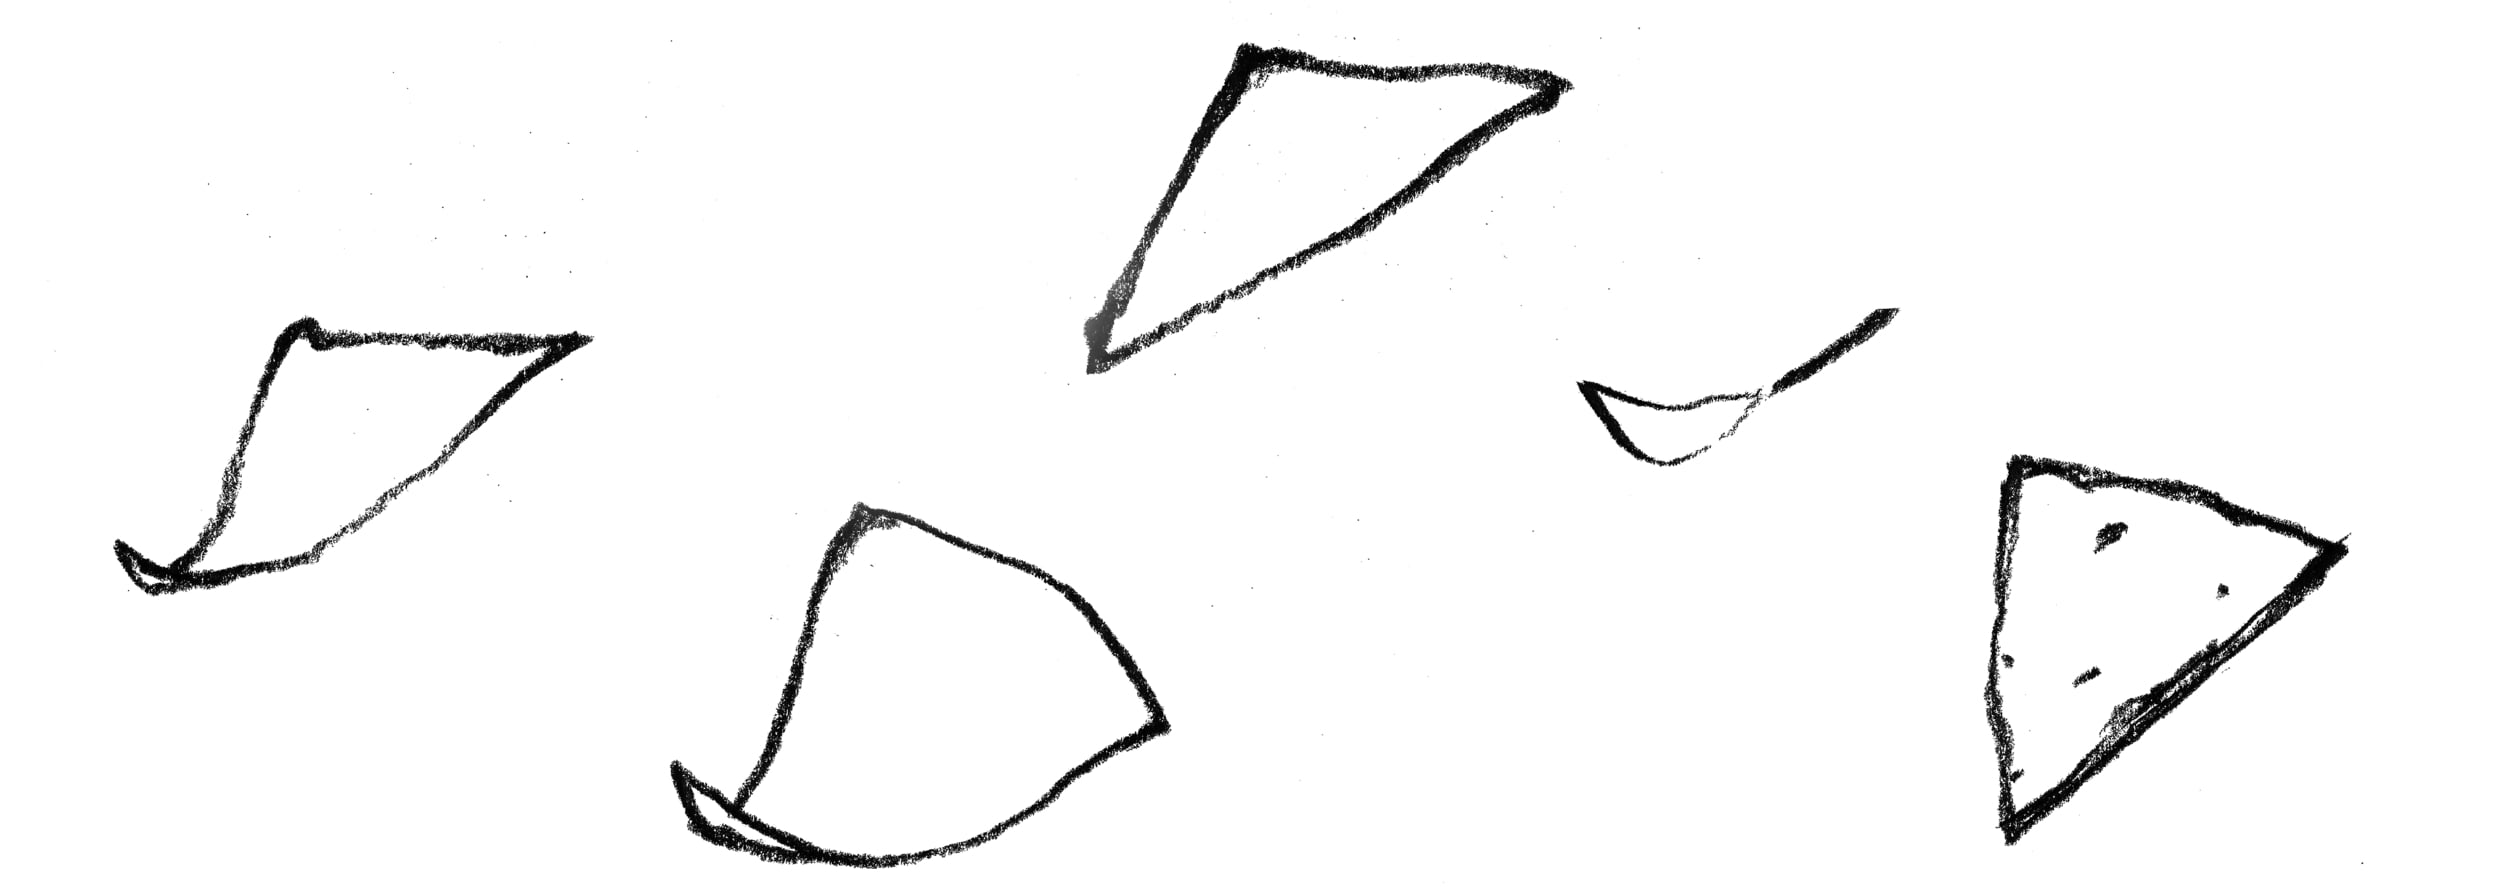 variety hand drawings of a corn chip for a salsa company